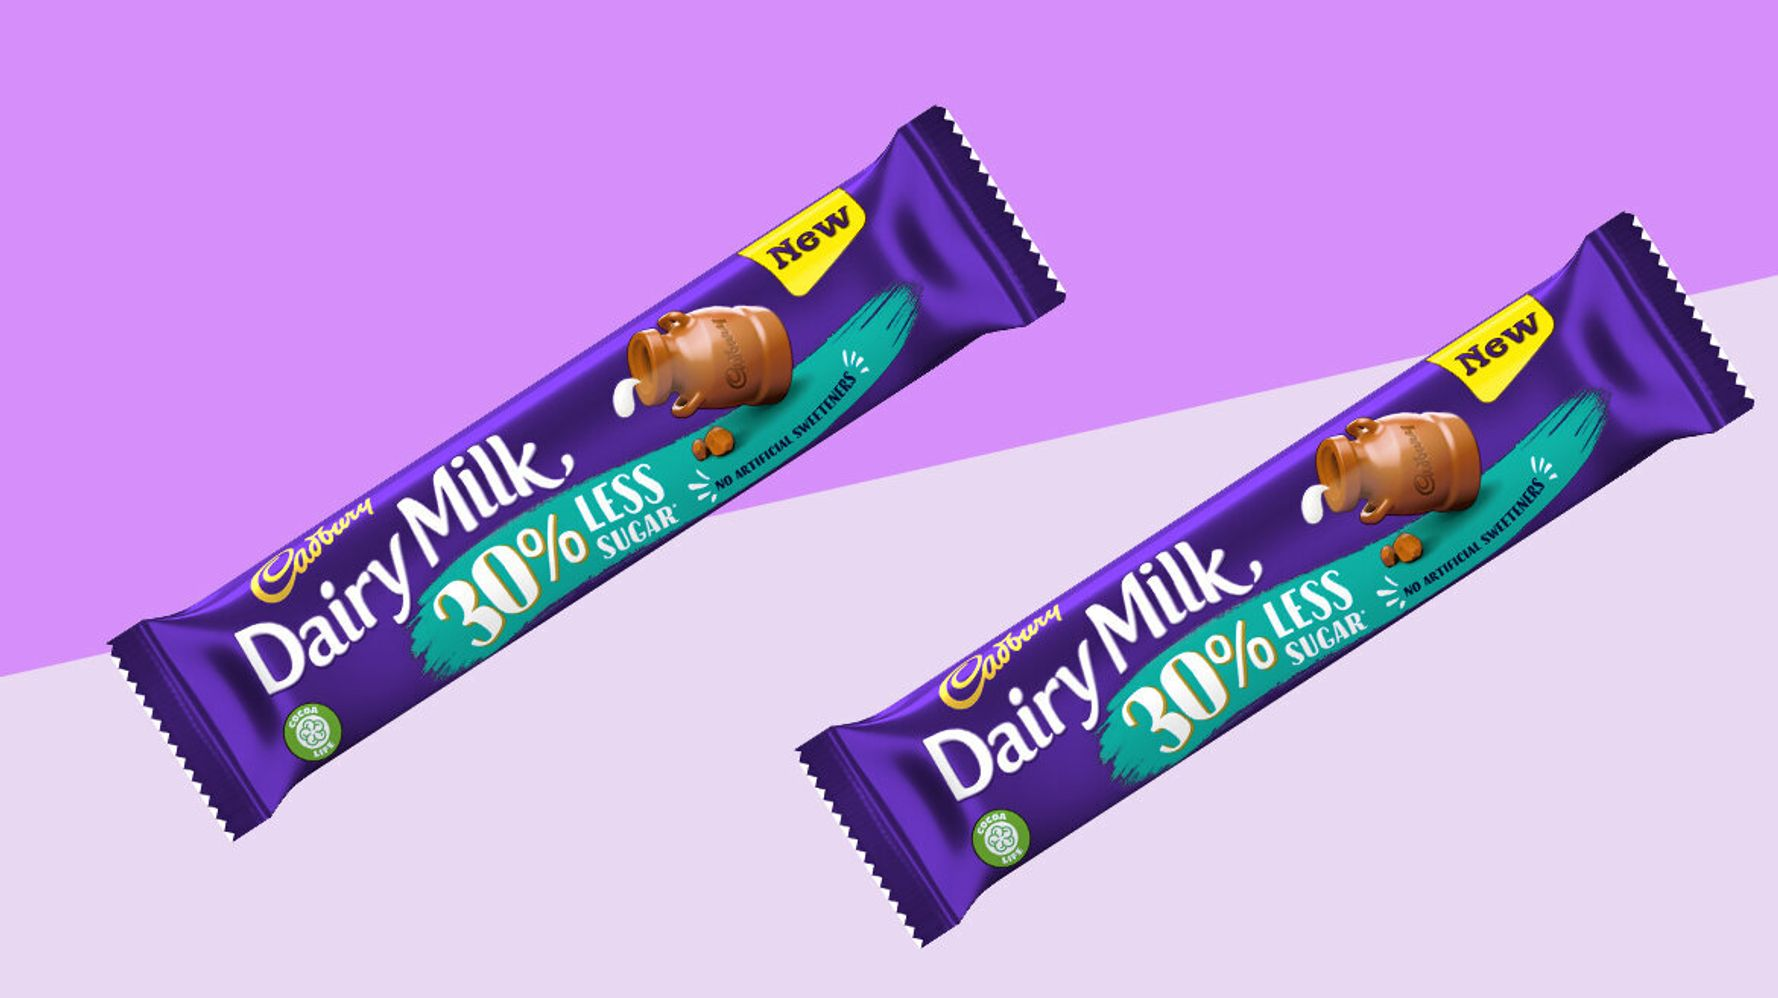 Cadbury Creates Dairy Milk With 30 Less Sugar But Makes